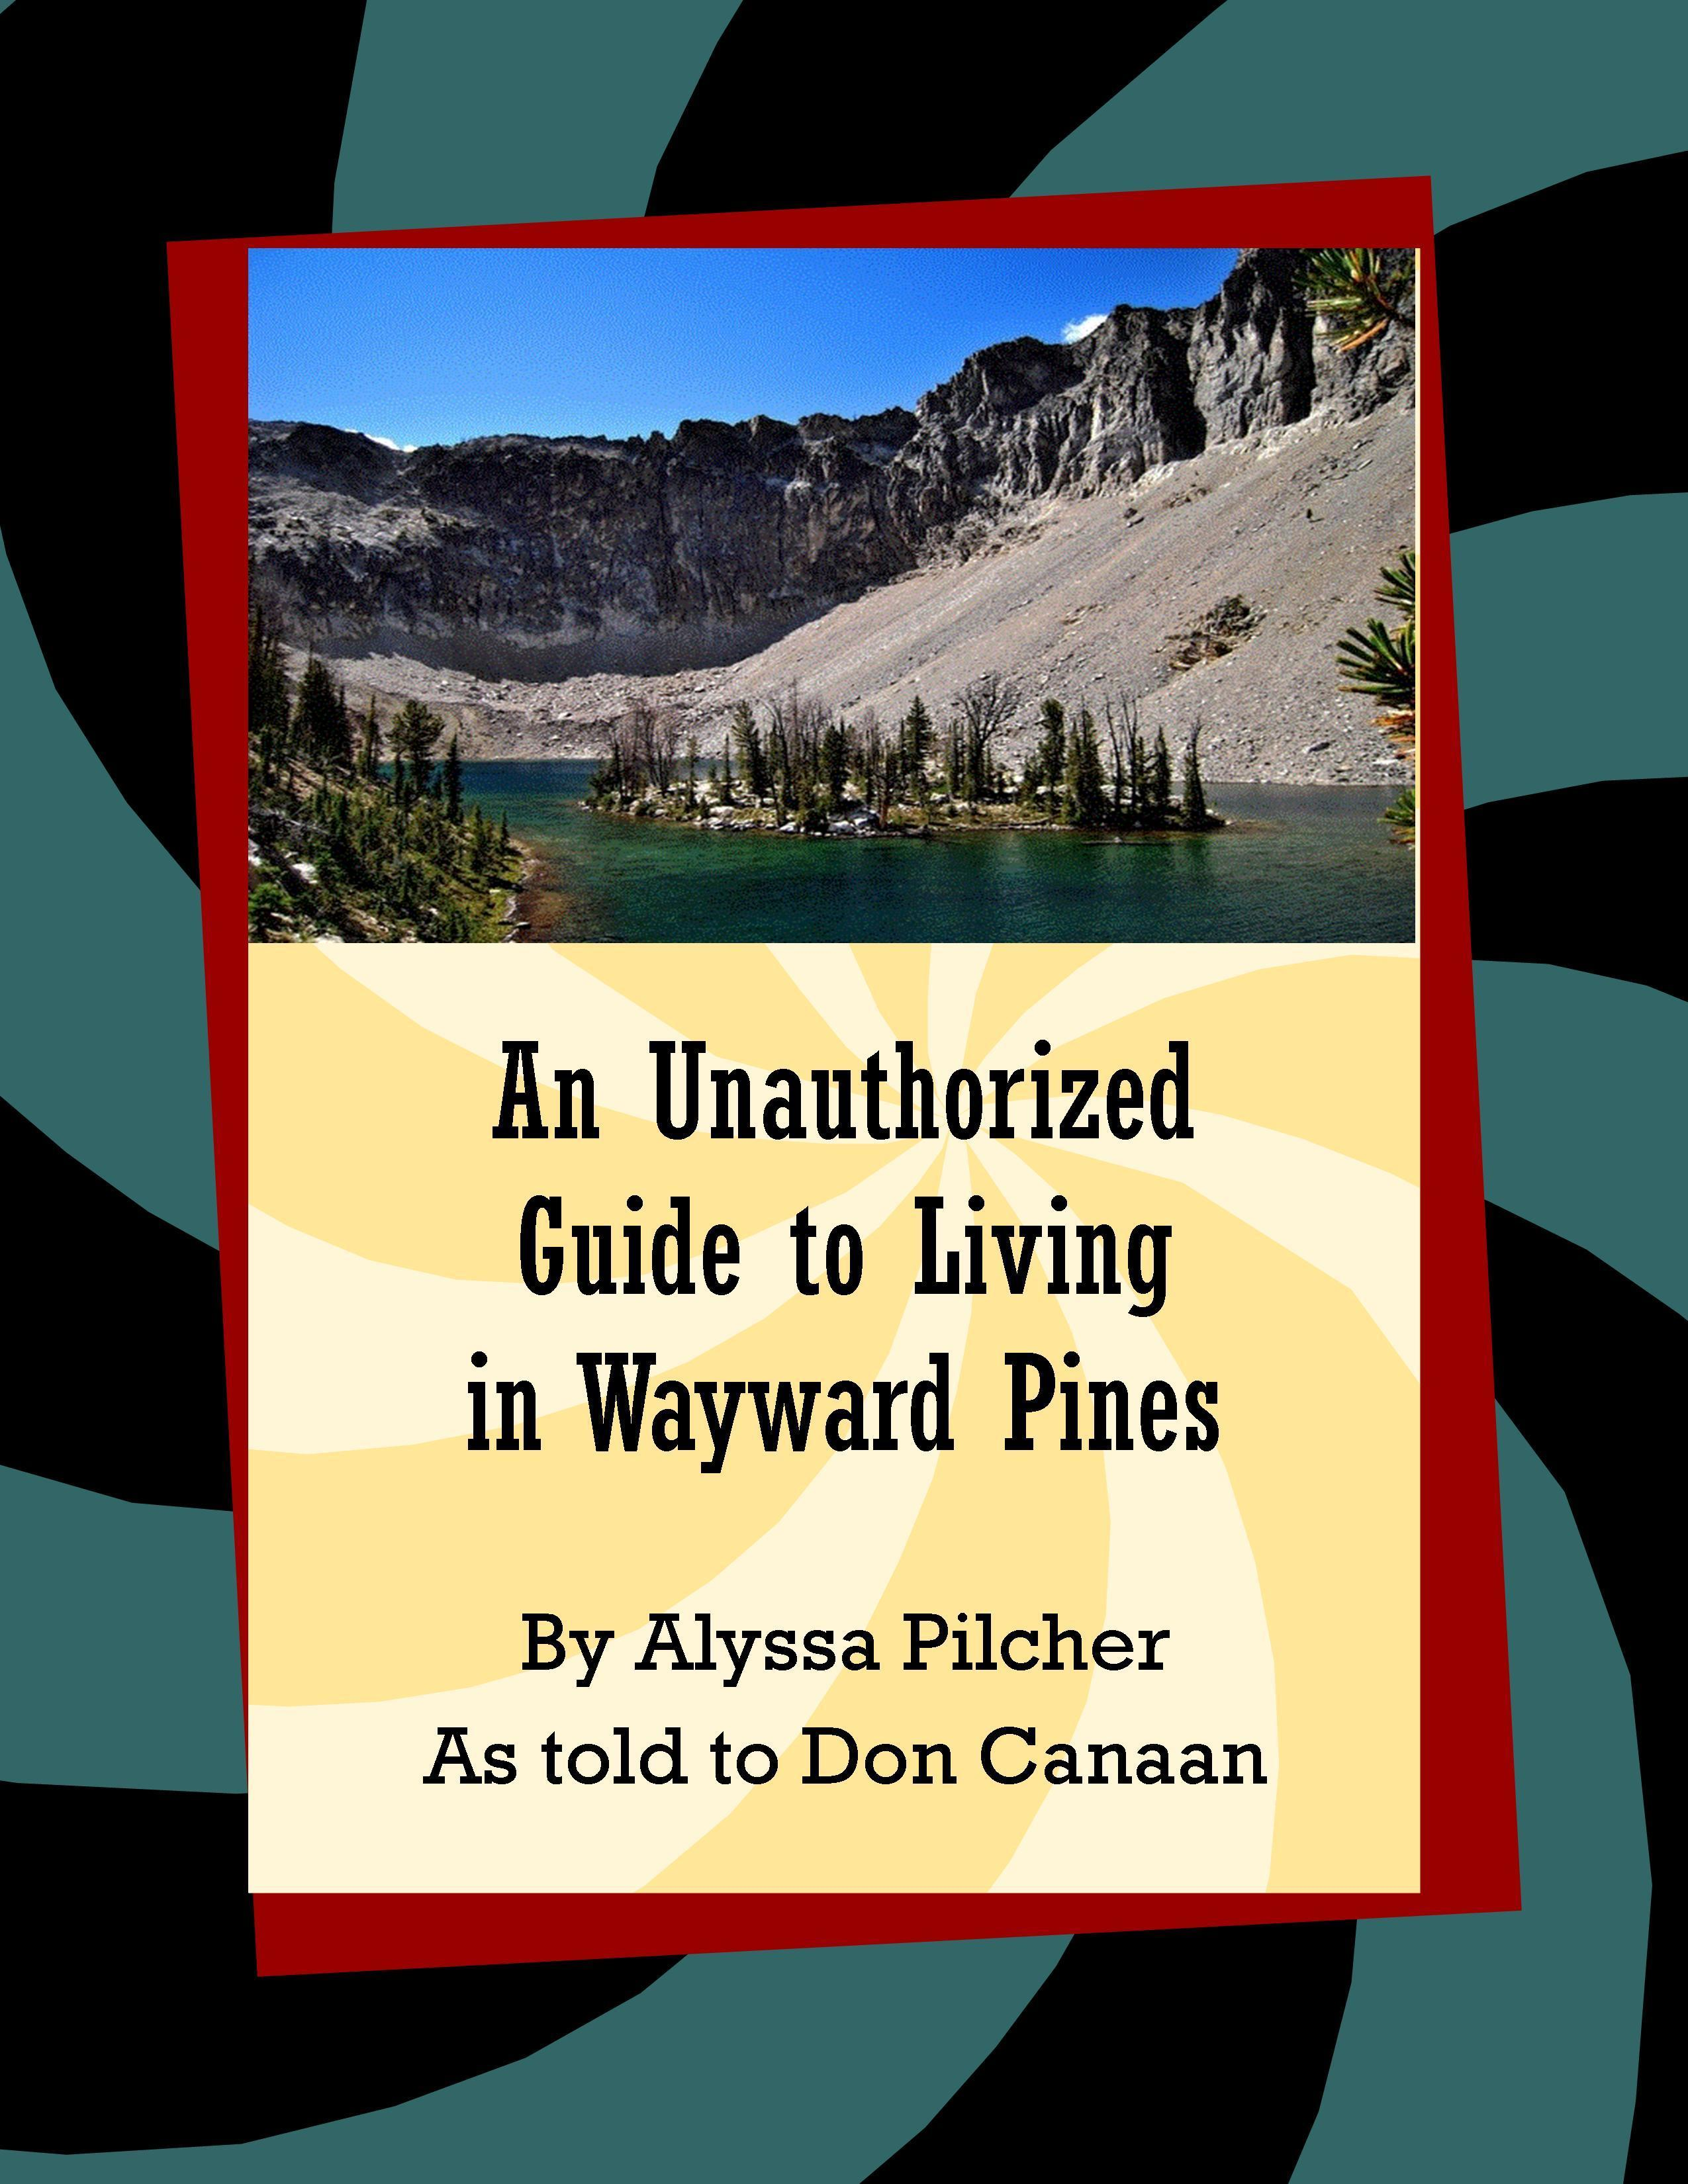 Wayward Pines: An Unauthorized Guide Don Canaan